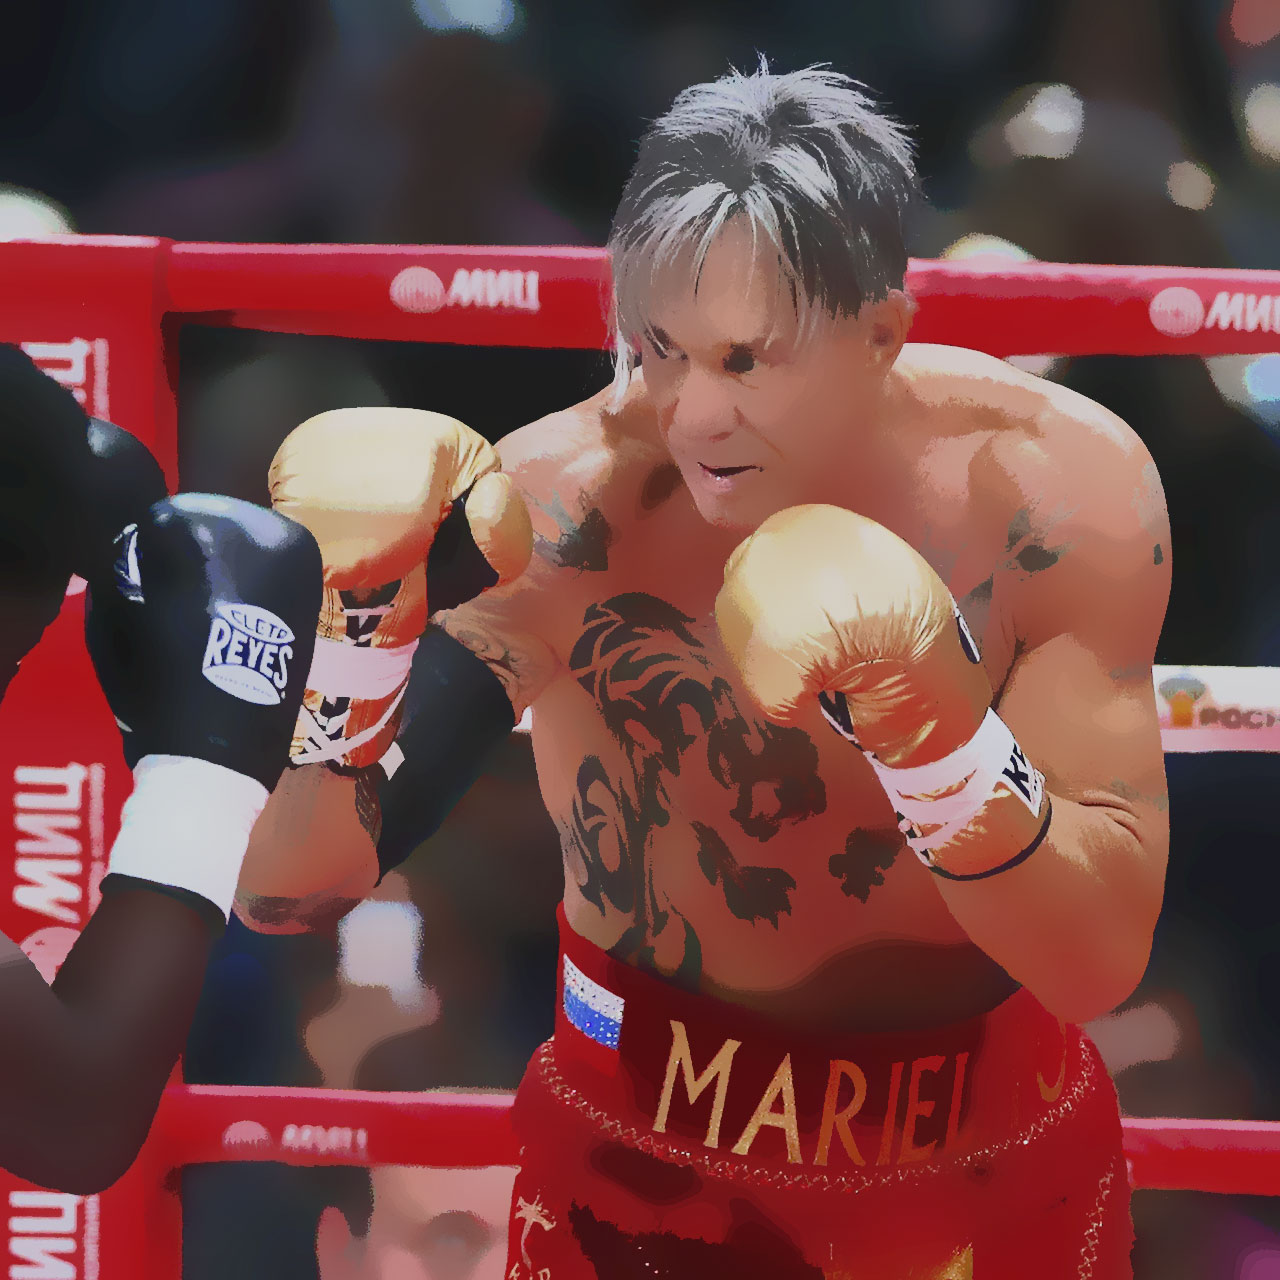 Mickey Rourke Boxing in Russia